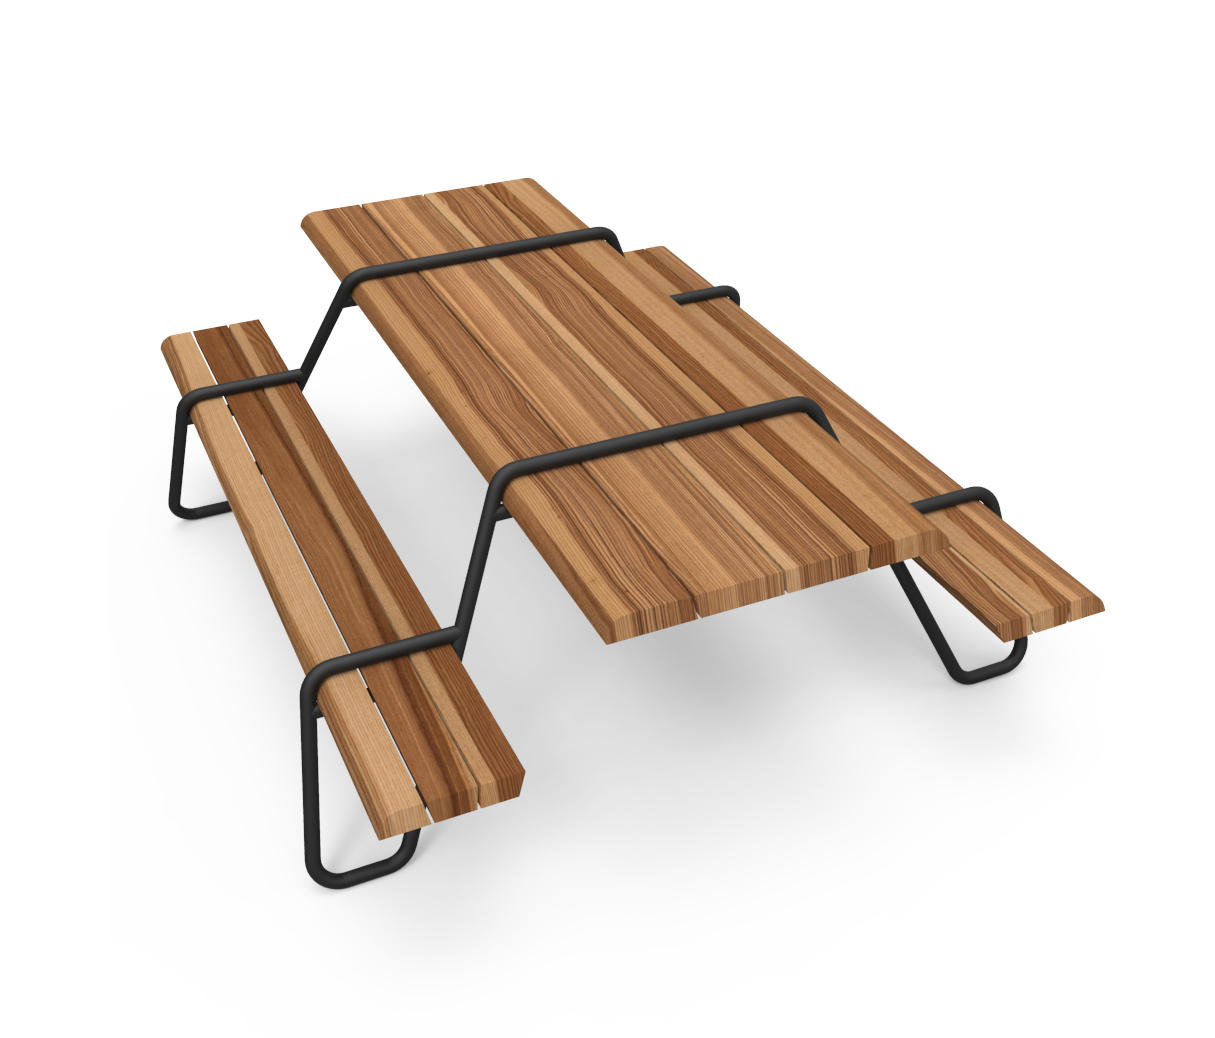 Clip Board Picnic 220 Bench Table Restaurant Tables And Benches From Lonc Architonic